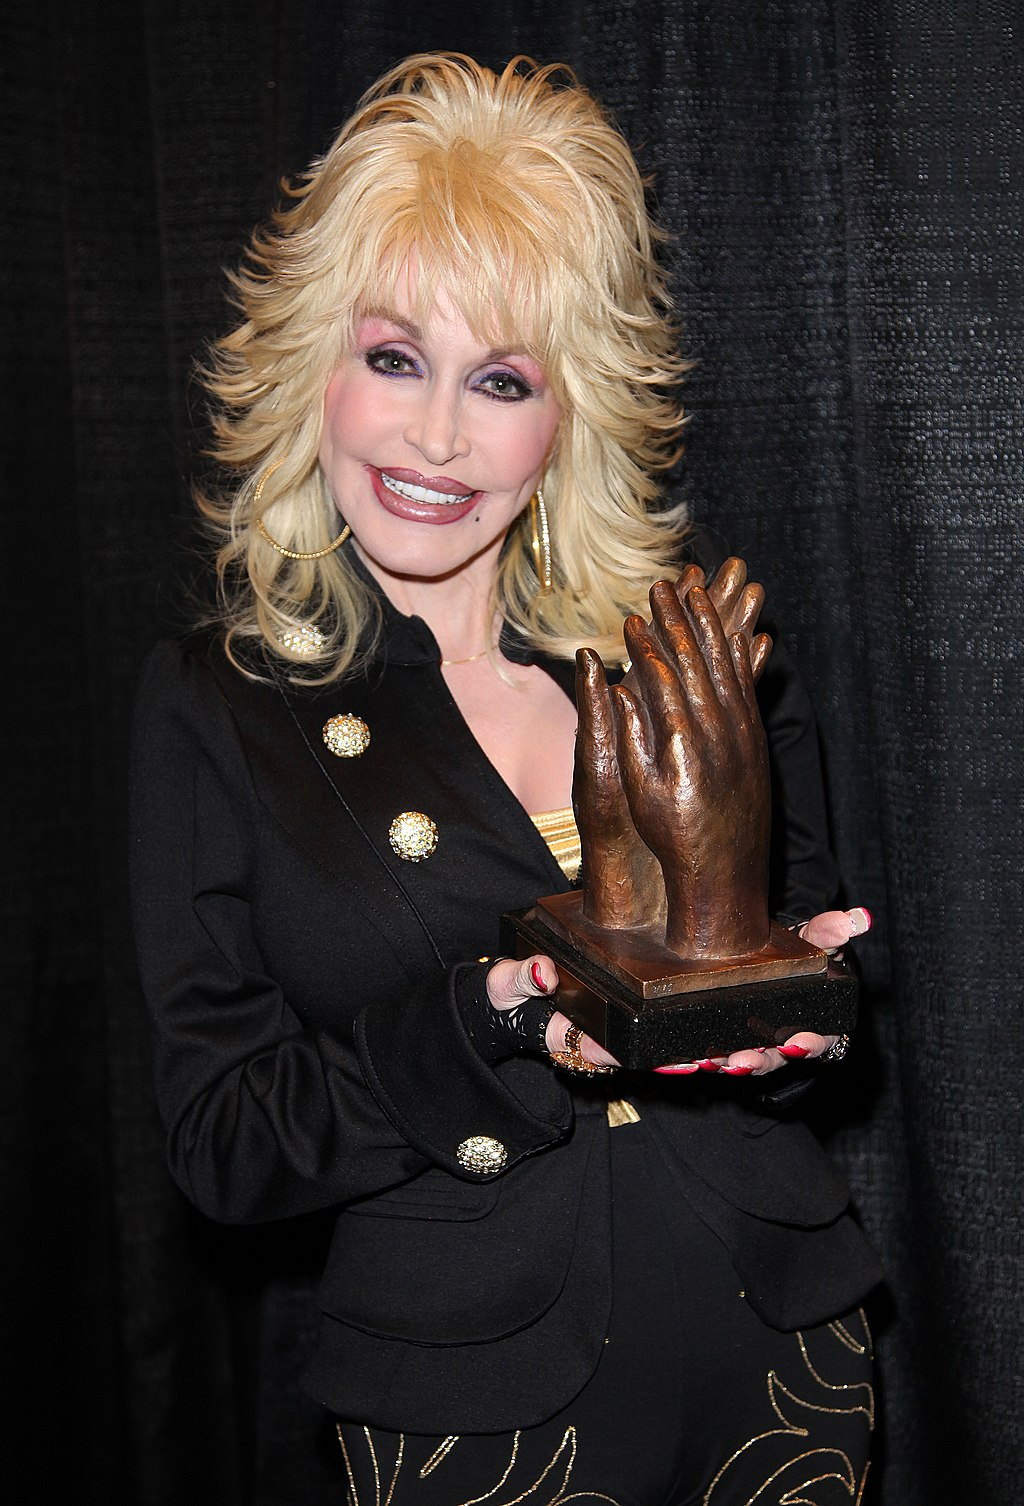 Supportive Leadership - Dolly Parton